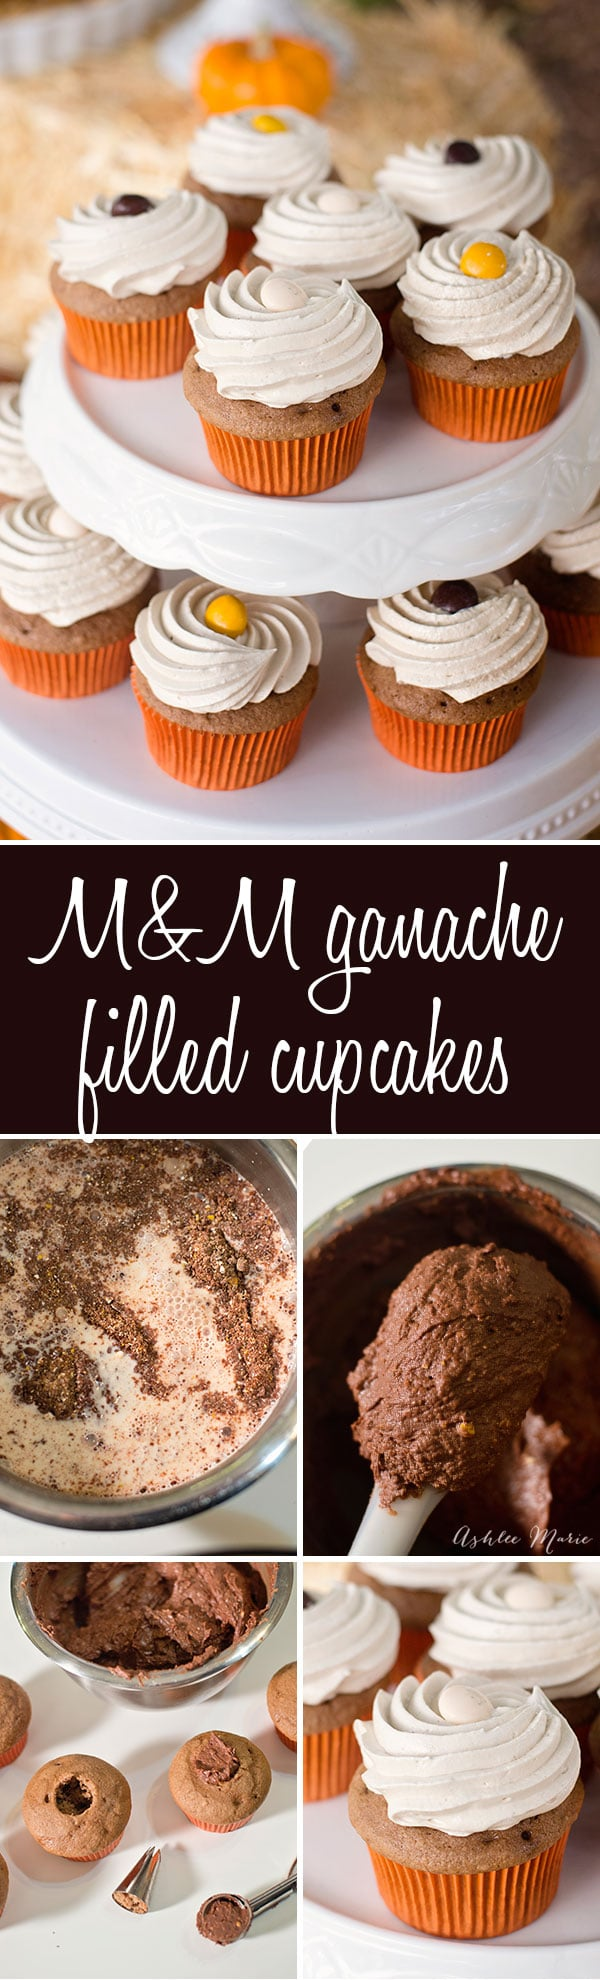 Chocolate cupcakes filled with a ganache made from M&M's® then topped with an easy seven minute brown sugar marshmallow frosting